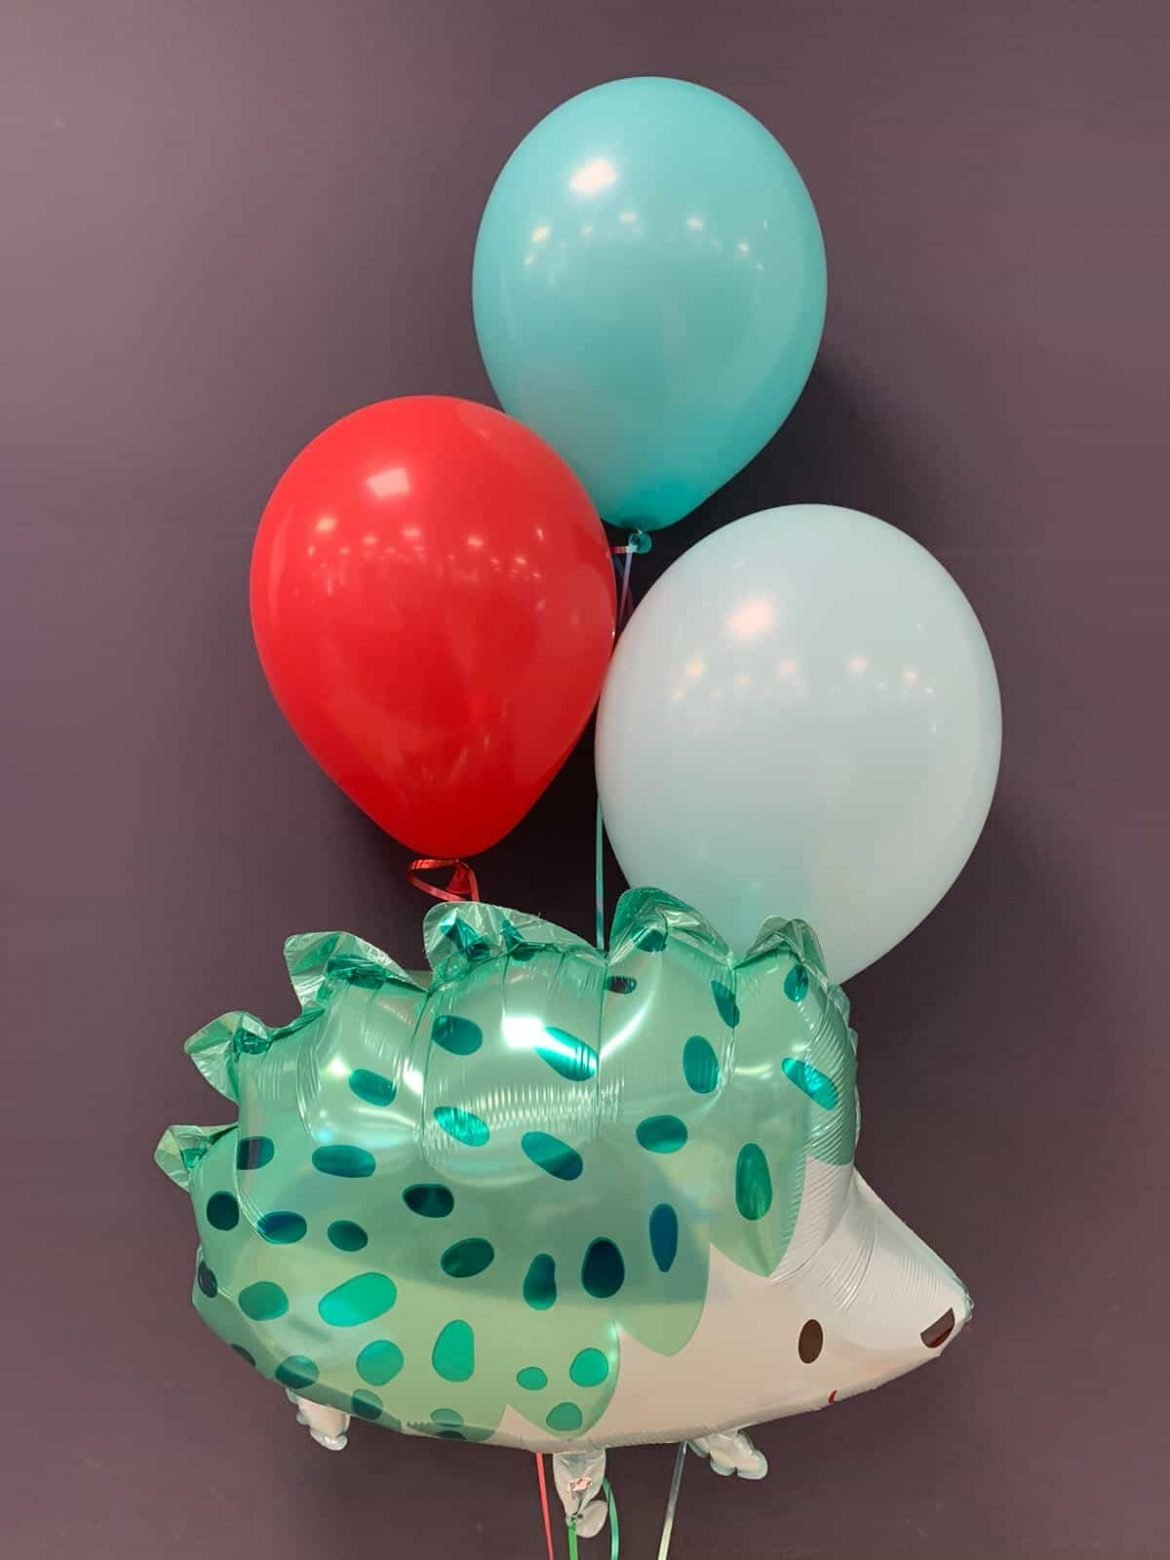 Ballon Igel € 5,90<br>mit Latexballons je € 1,95 1